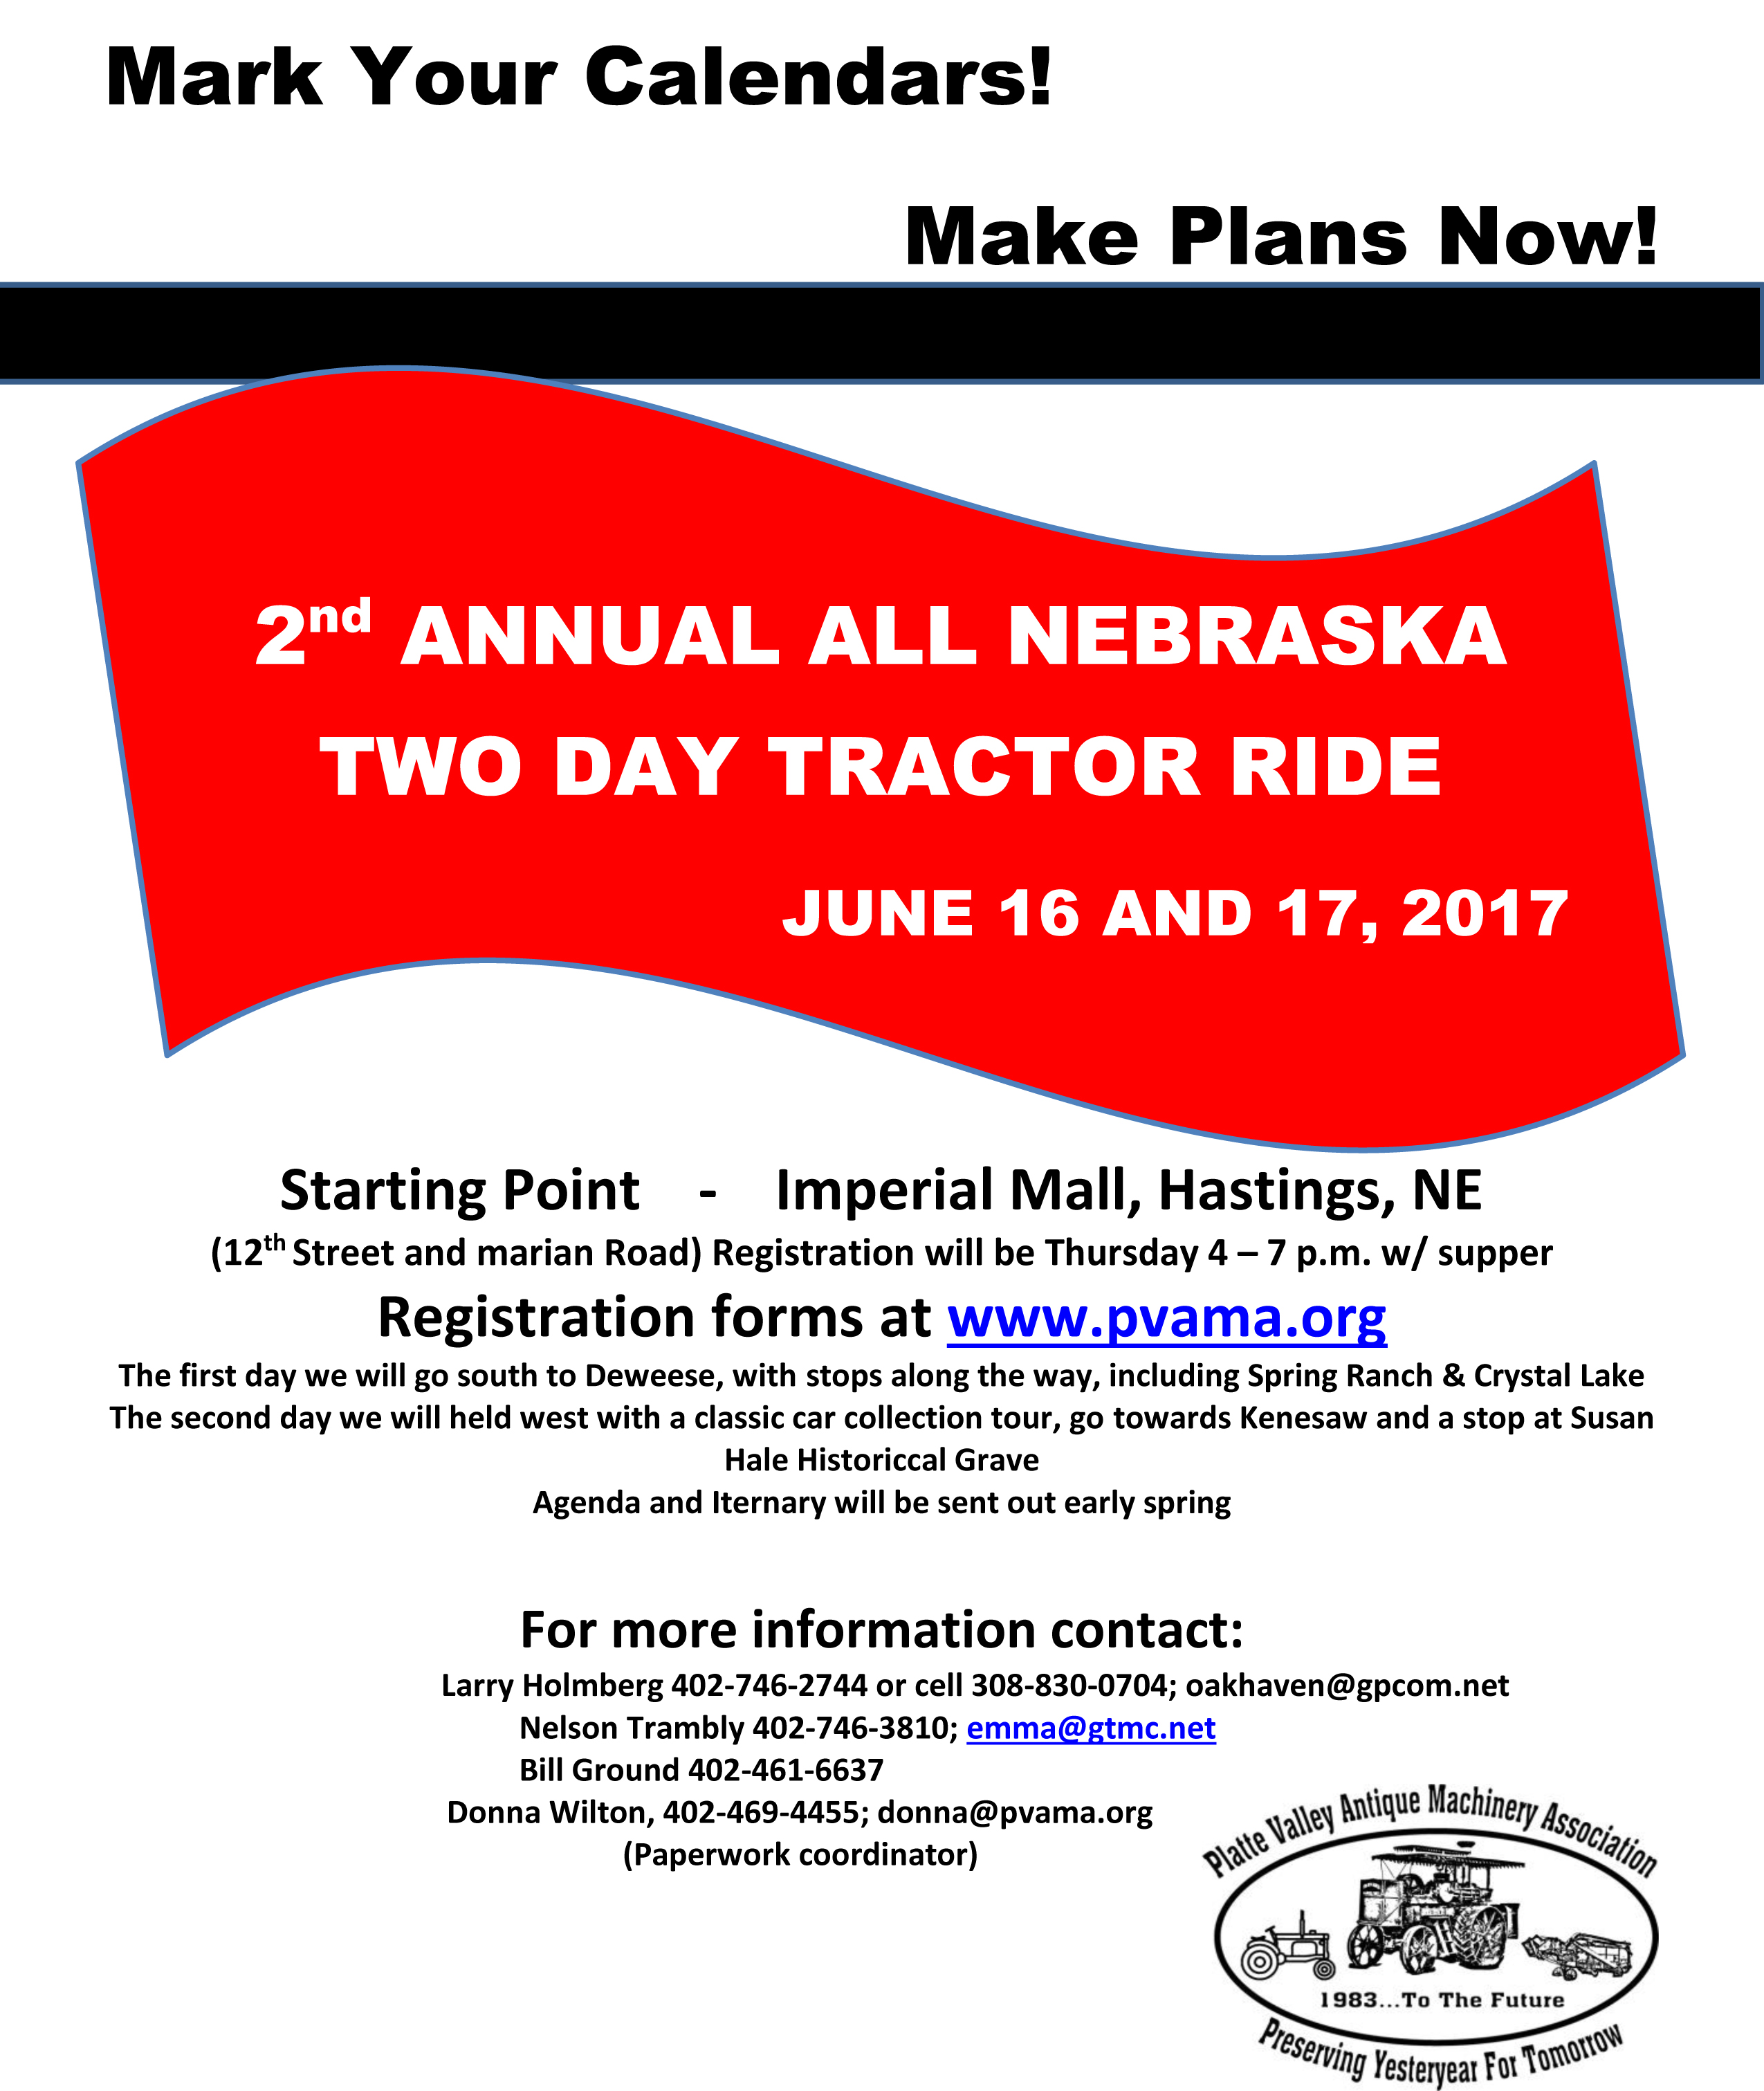 Nebraska adams county ayr 68925 - 2017 All Nebraska Tractor Drive